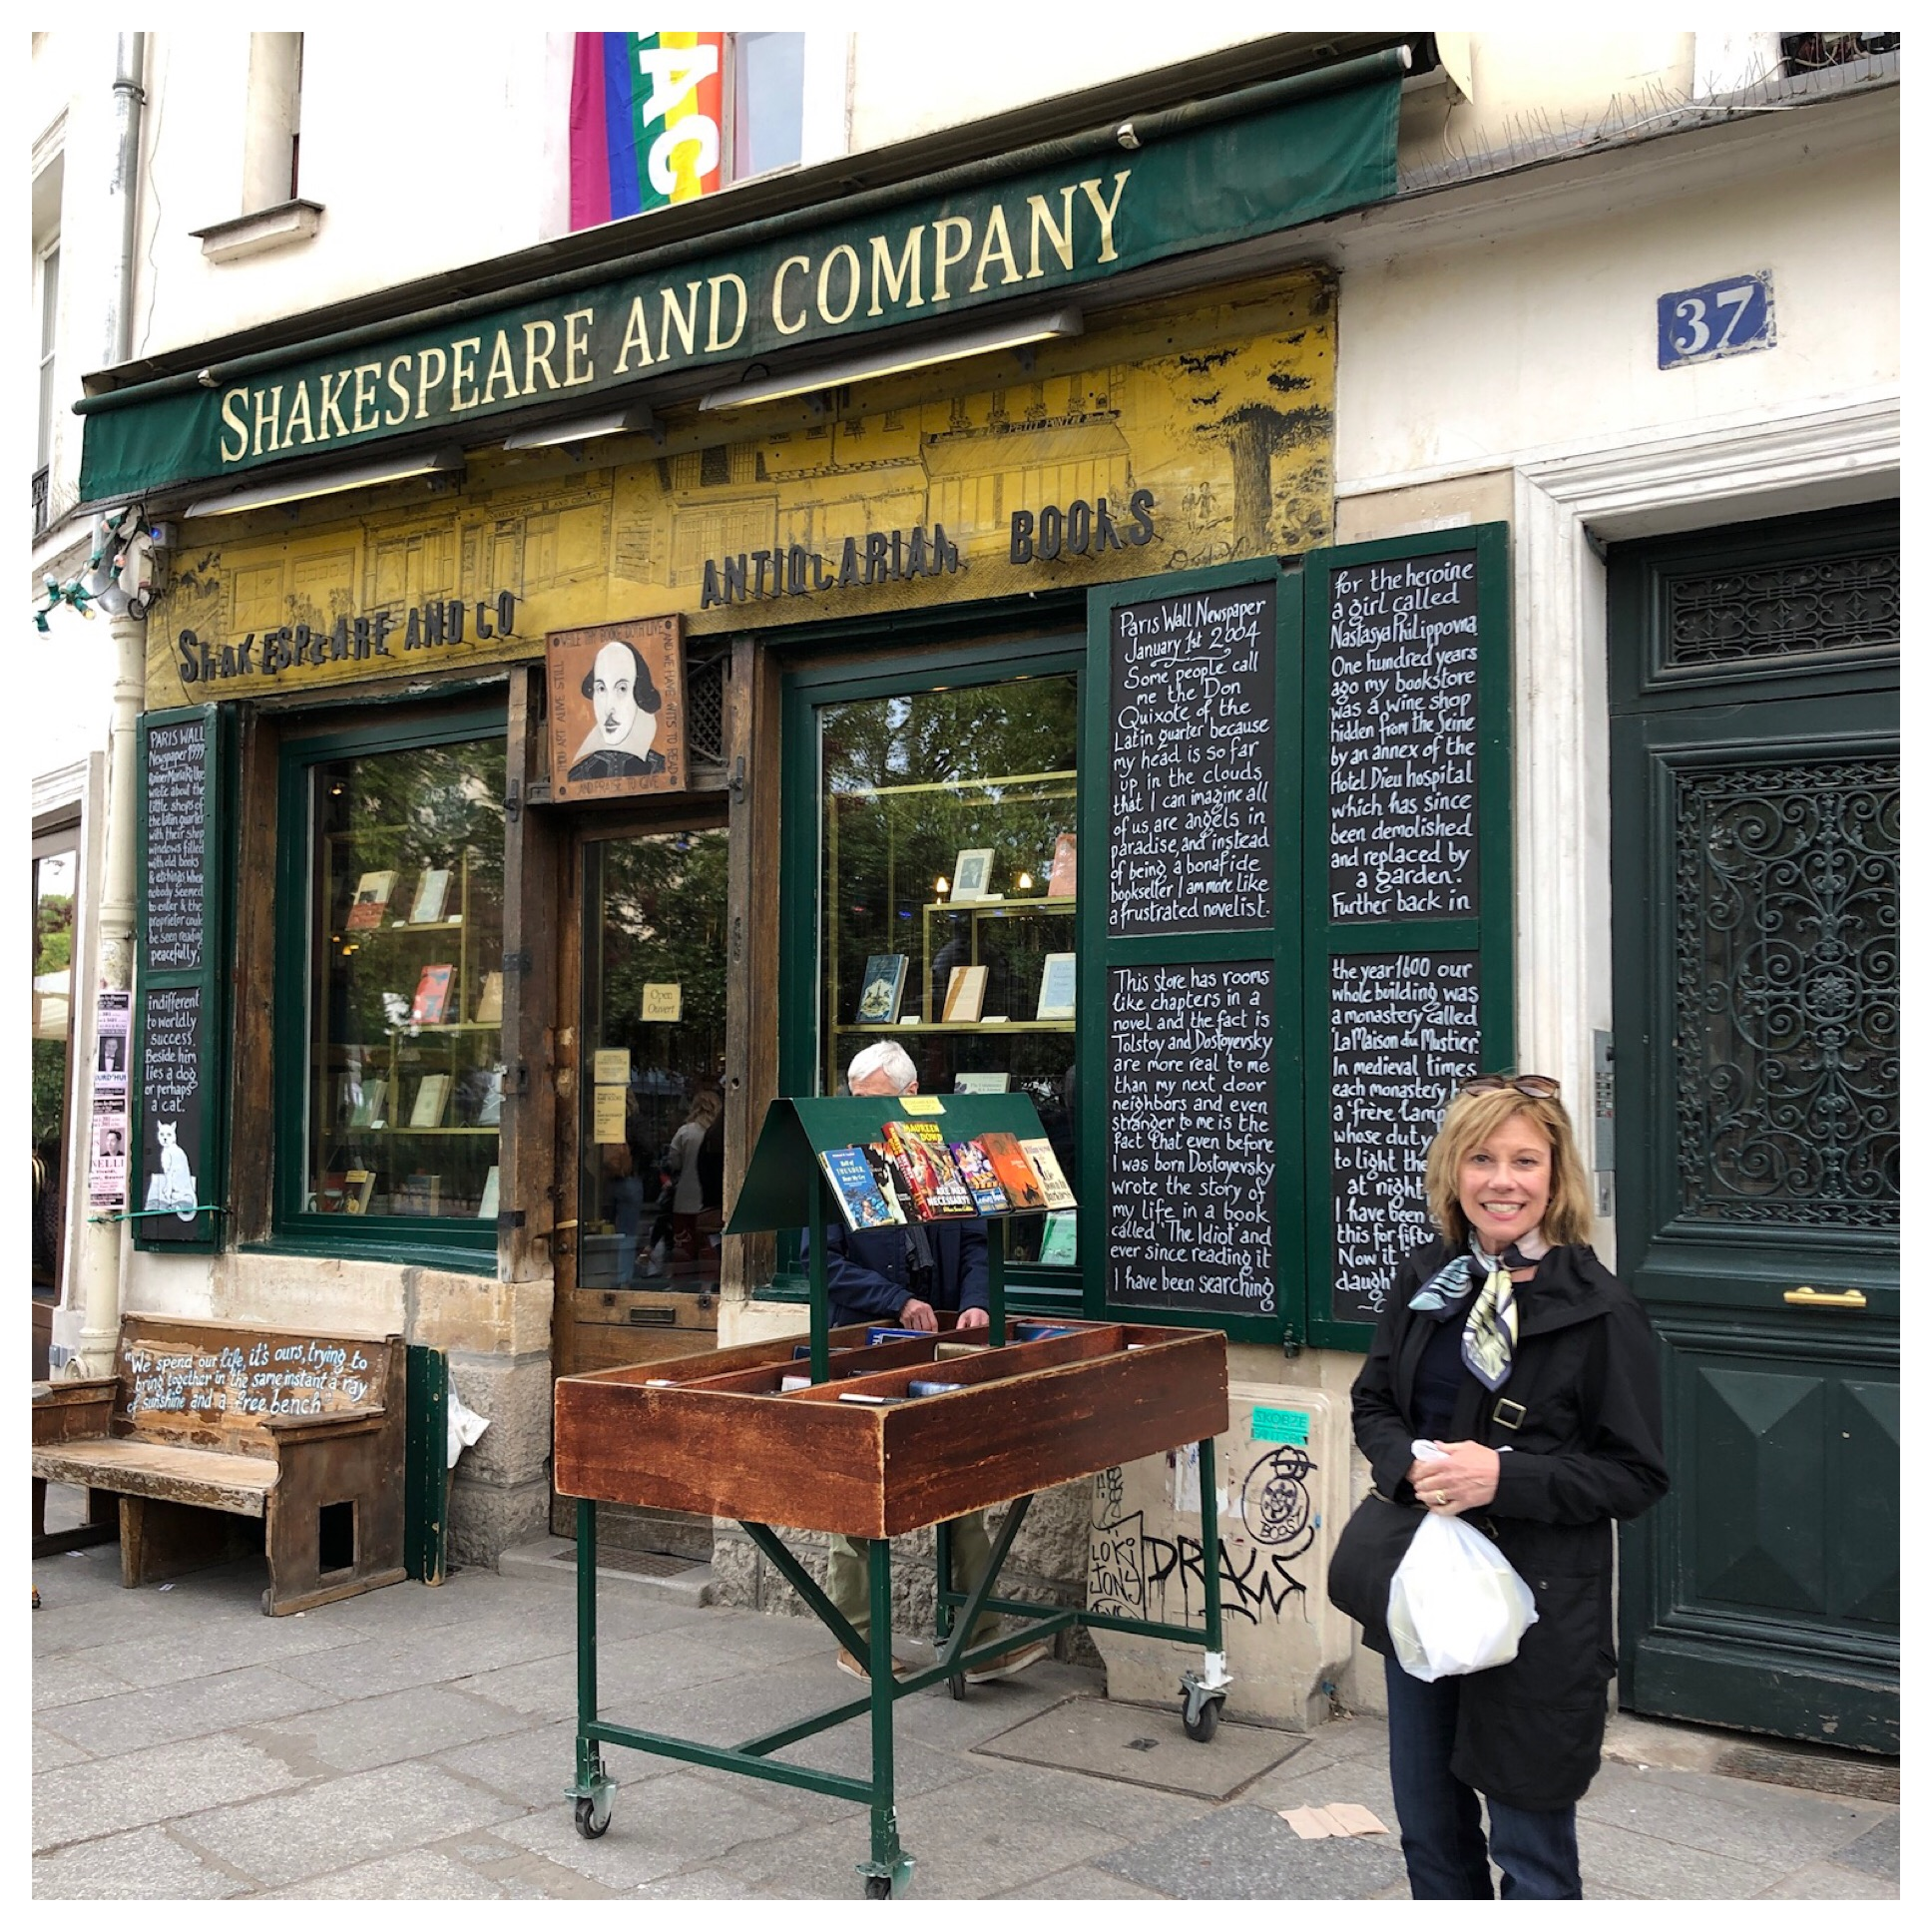 A famous American bookstore on the left bank. A meeting place for Hemingway, James Joyce, George Bernard Shaw, Gertrude Stein and Ezra Pound. Worth a stop for sure!